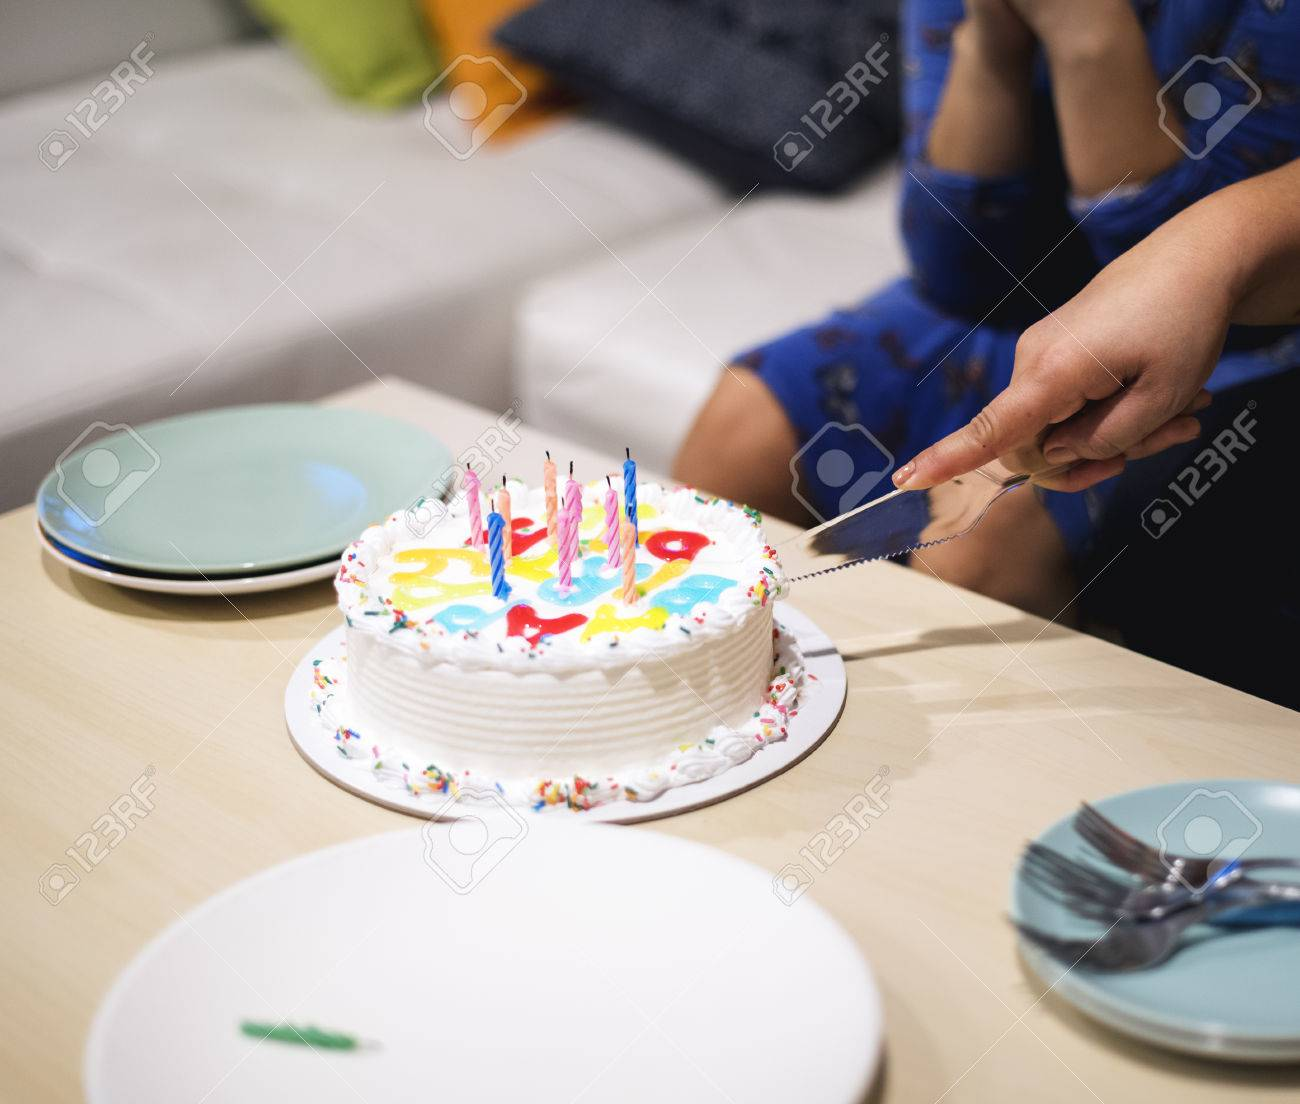 Hand Cutting Birthday Cake For Little Girl Stock Photo